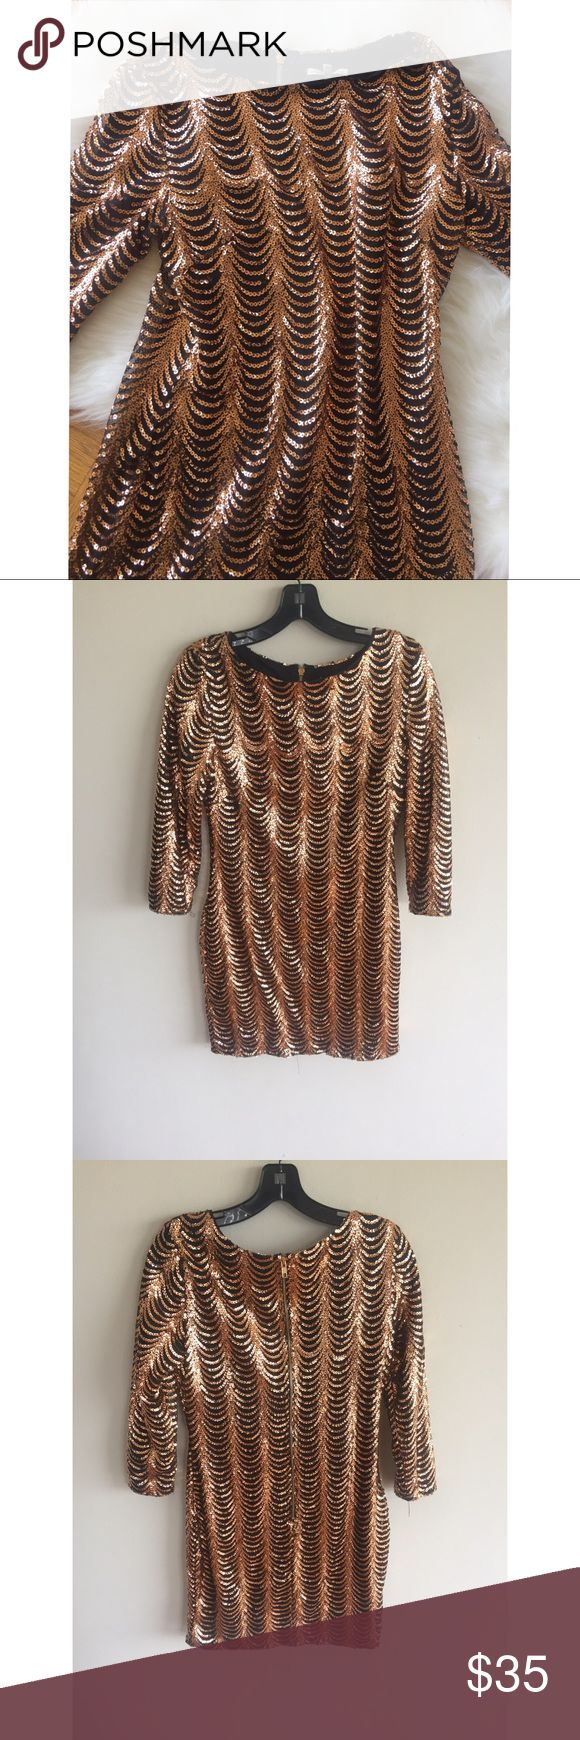 "Charlotte Russe Rose Gold Sequence Dress This dress is very pretty. There maybe some pieces of sequence missing. Overall really great condition. This dress measures approximately 30"" Long. The sleeves measure approximately 20"" Long. 100% Polyester Charlotte Russe Dresses Midi"